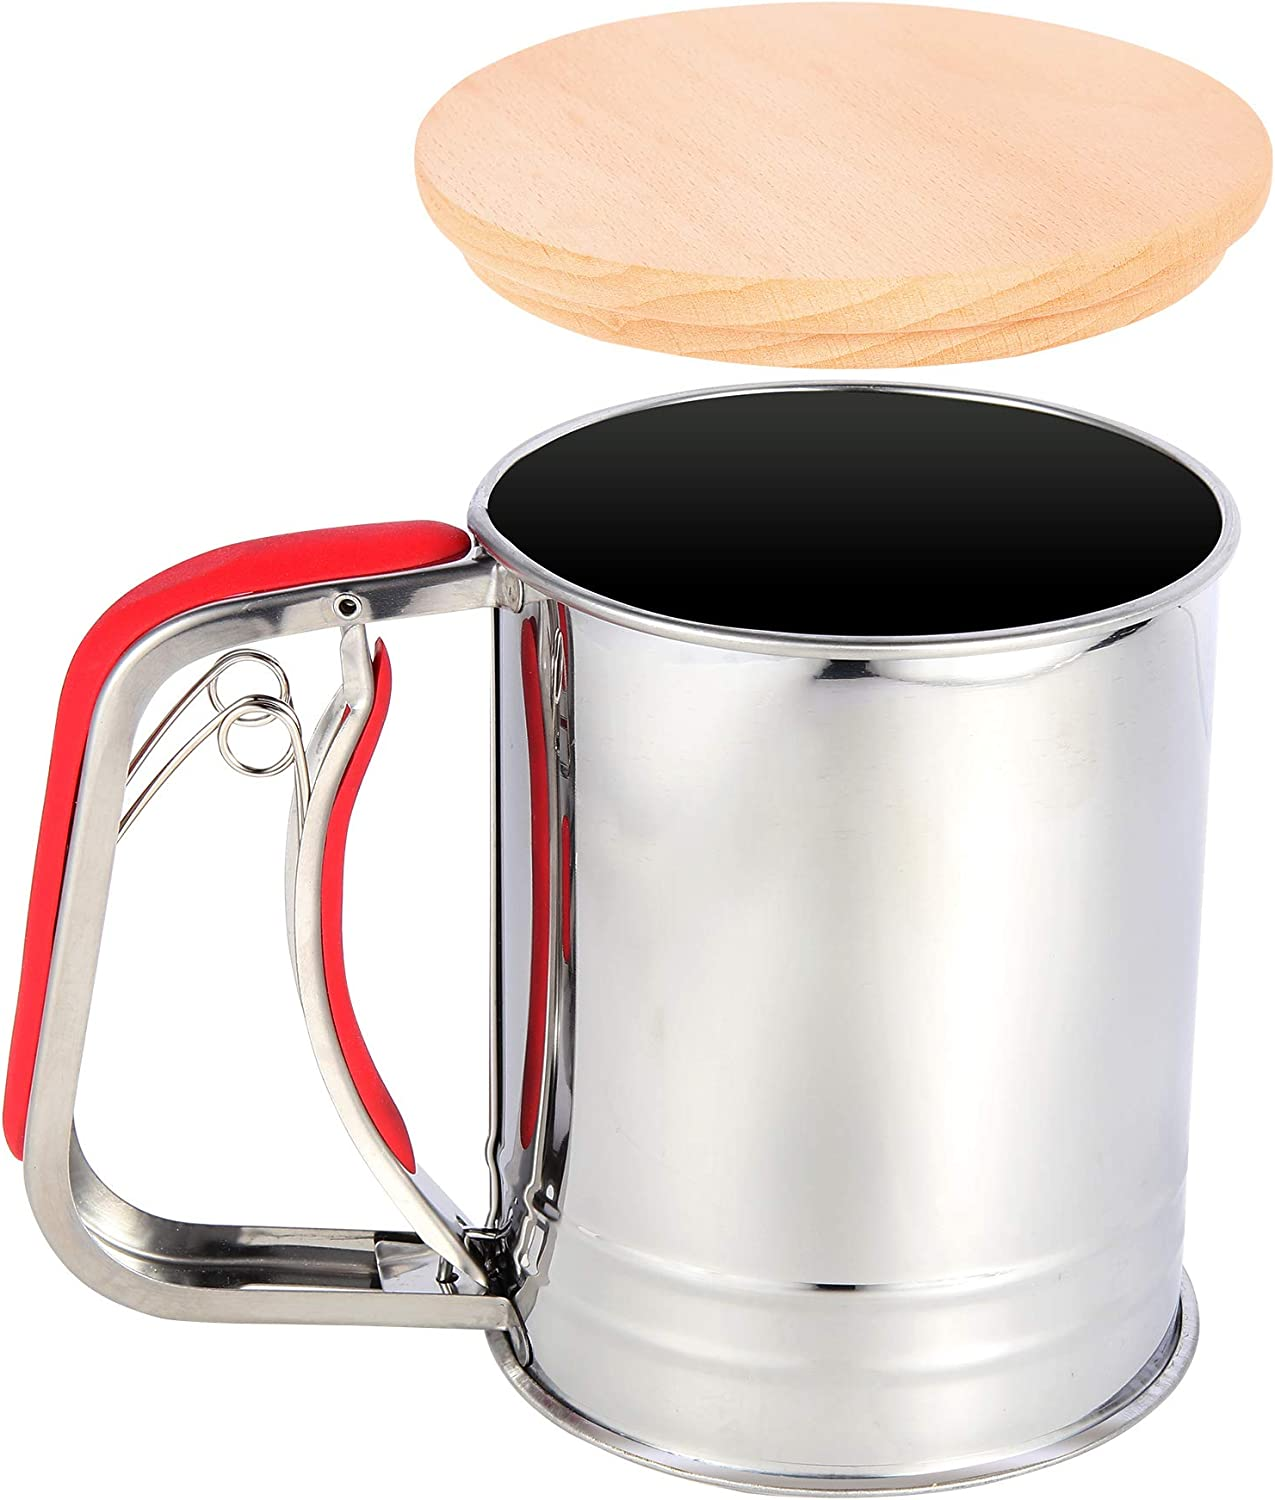 YongLy 3 Cup Flour Sifter Stainless Steel Baking Seive Cup with Wooden Lip Easy Storage (Red)